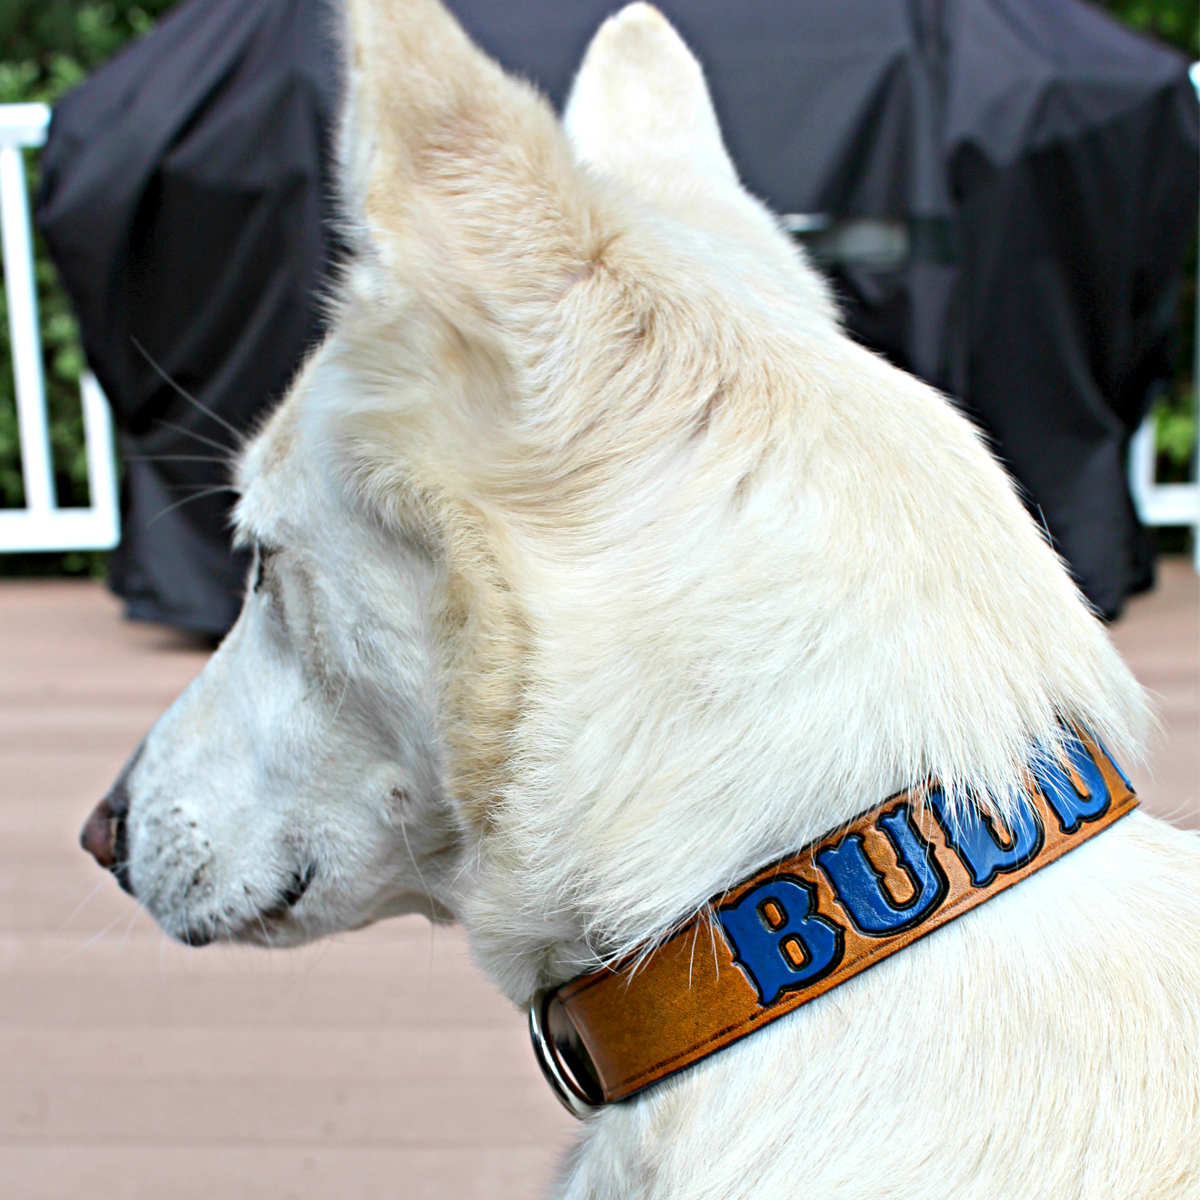 painted-personalized-tan-leather-dog-collar-the-leather-smithy_11